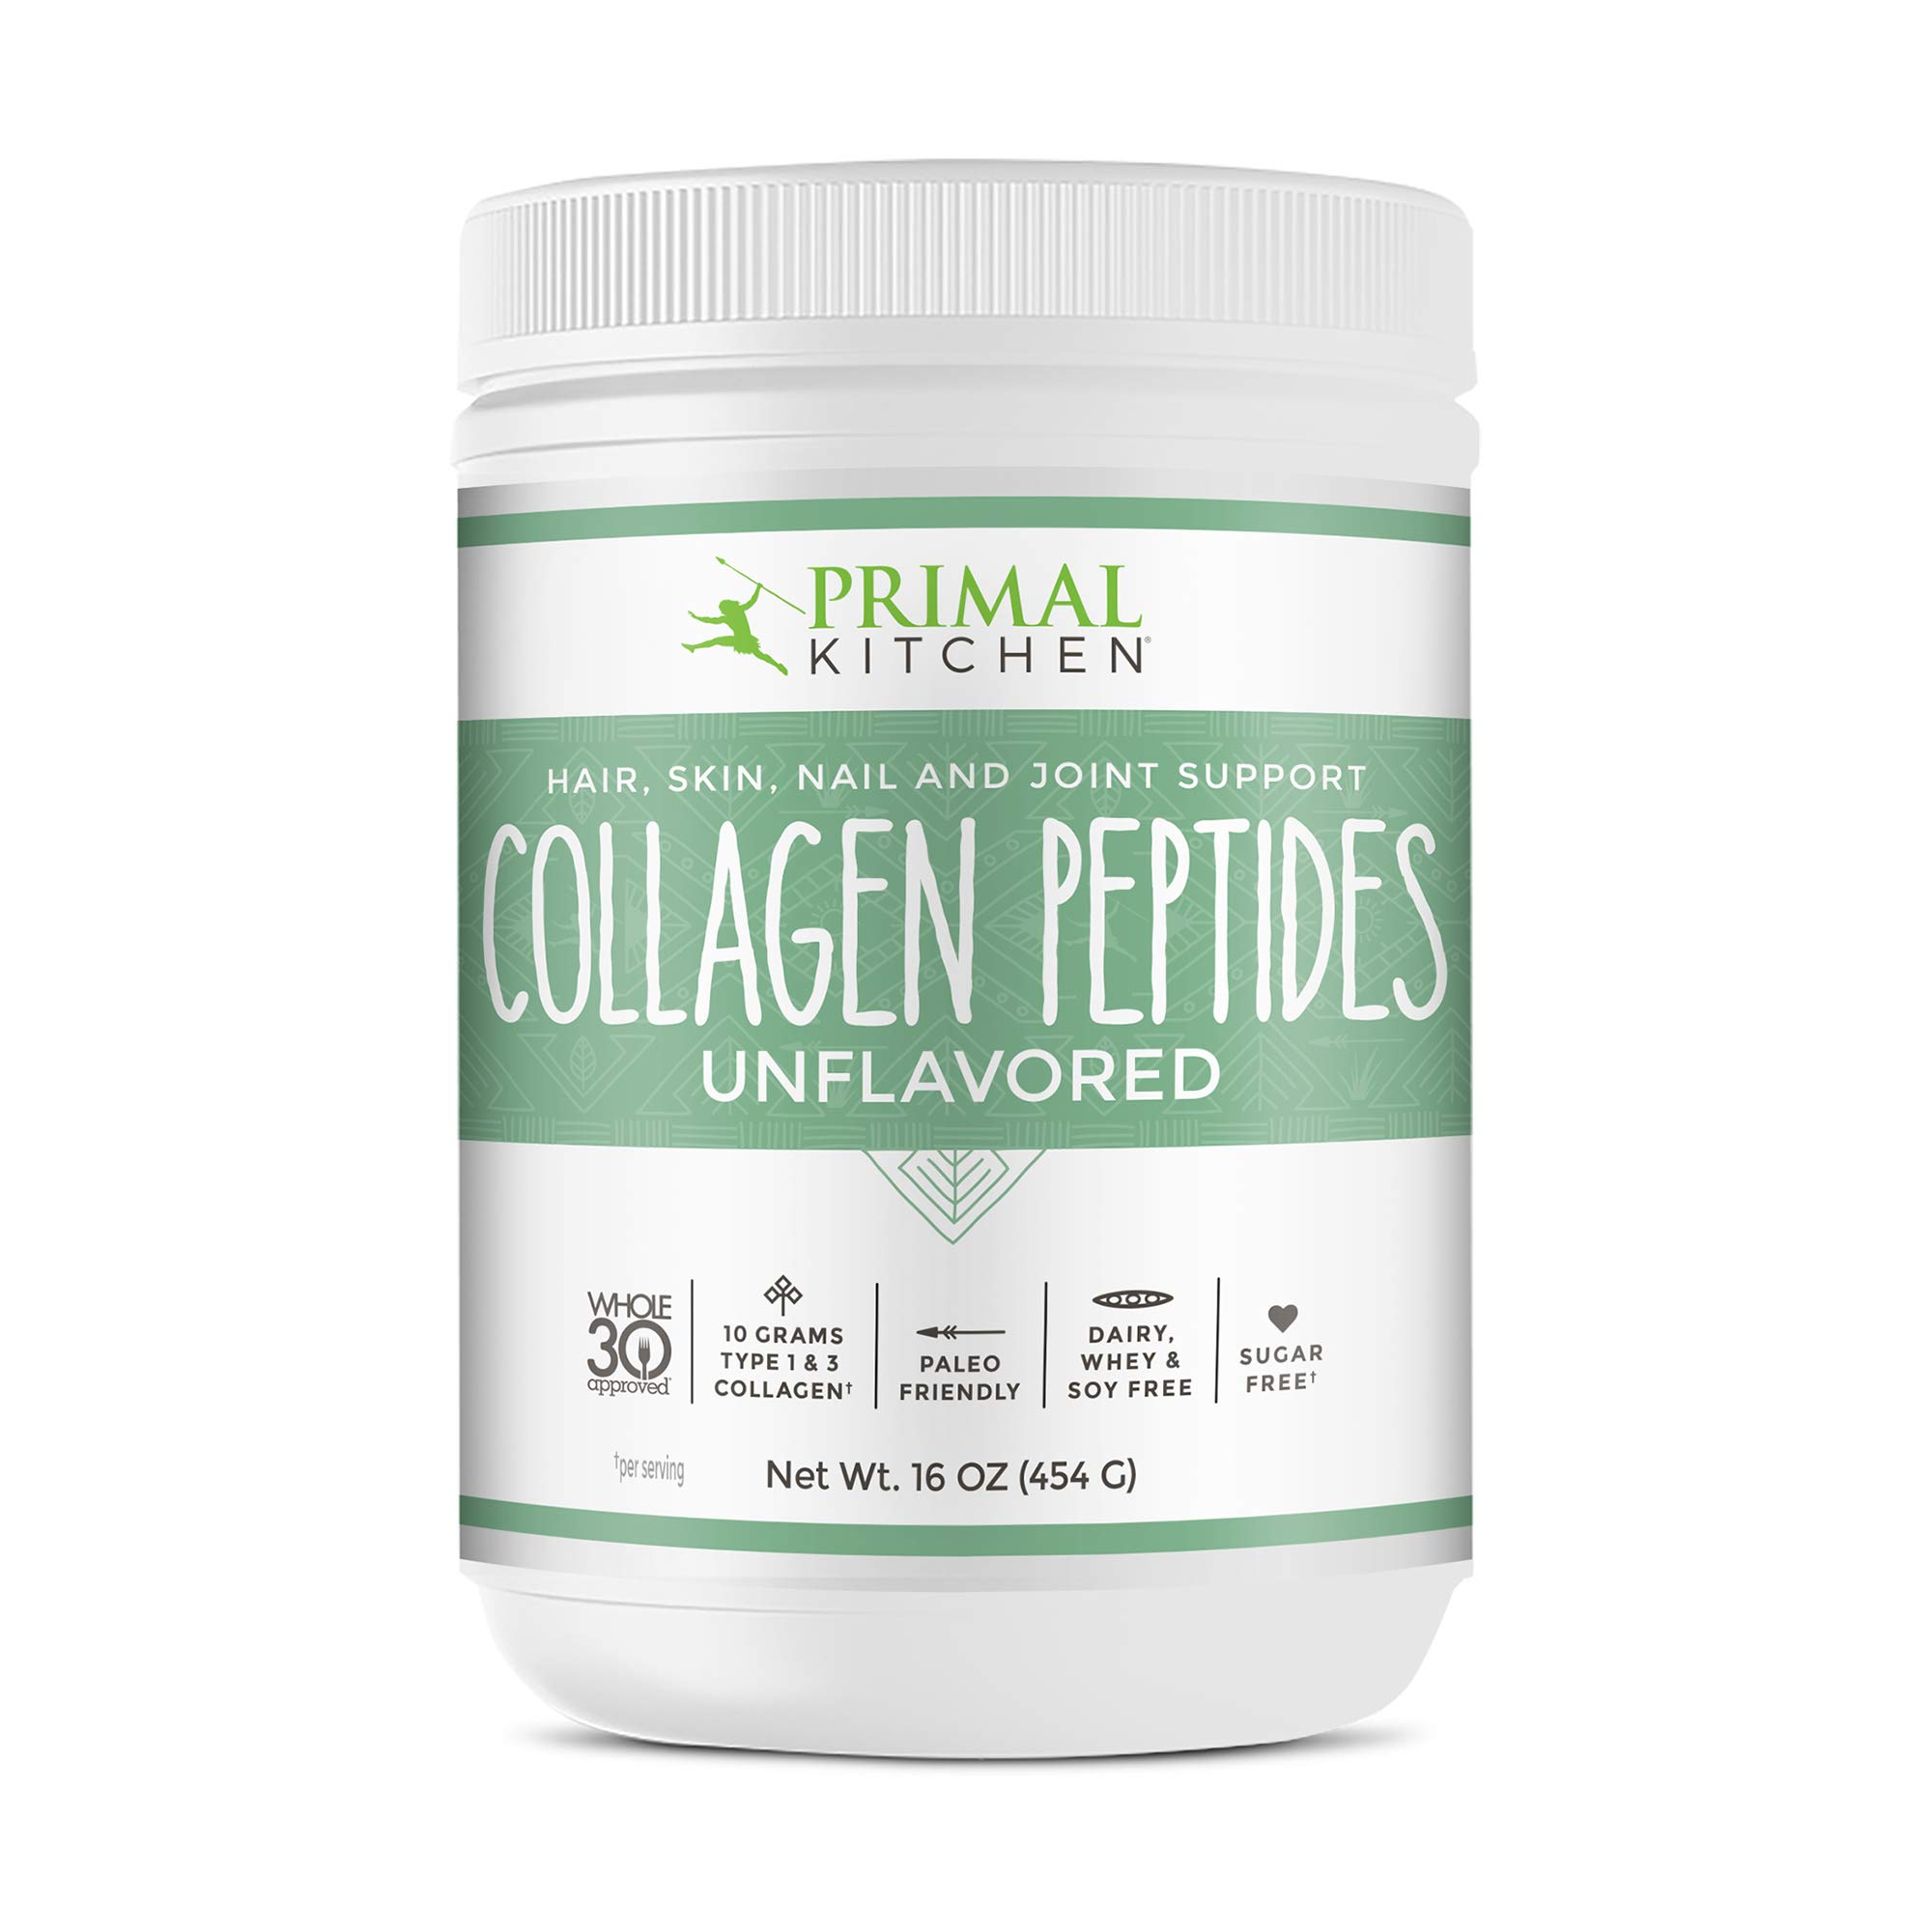 Primal Kitchen Unflavored Collagen Peptides, Whole 30 Approved - Supports Healthy Hair, Skin, Nails and Joints- 16 oz. by Primal Kitchen